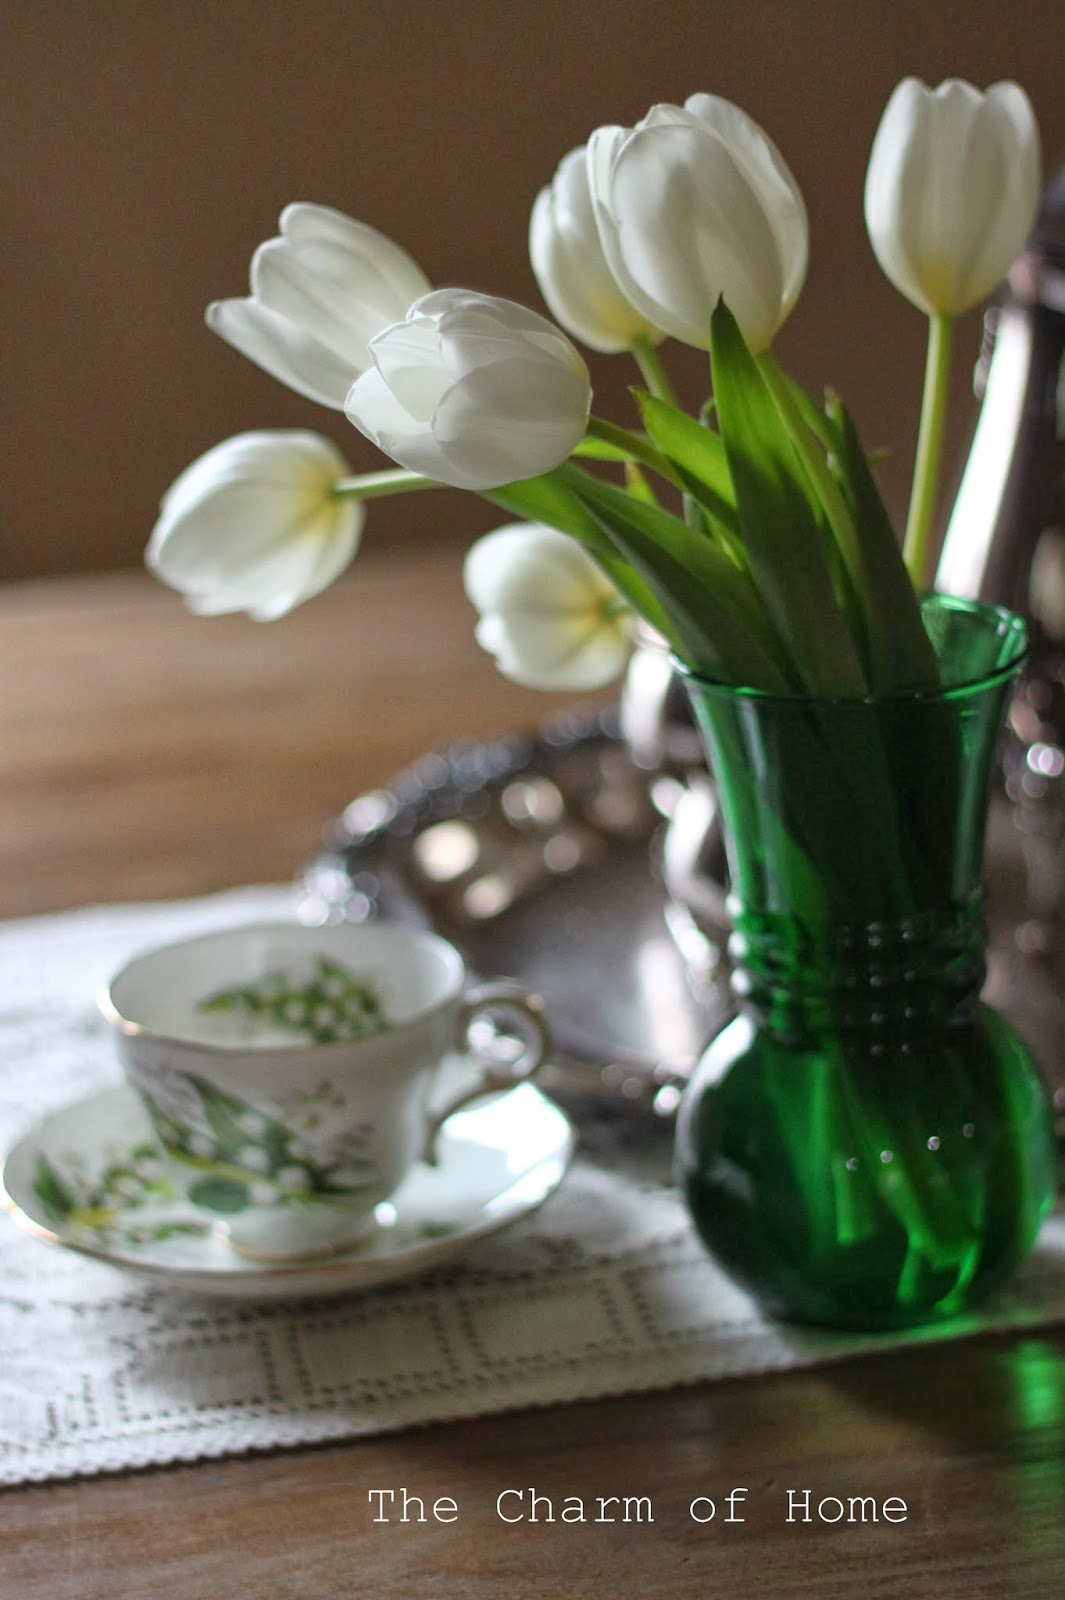 March Tea, The Charm of Home